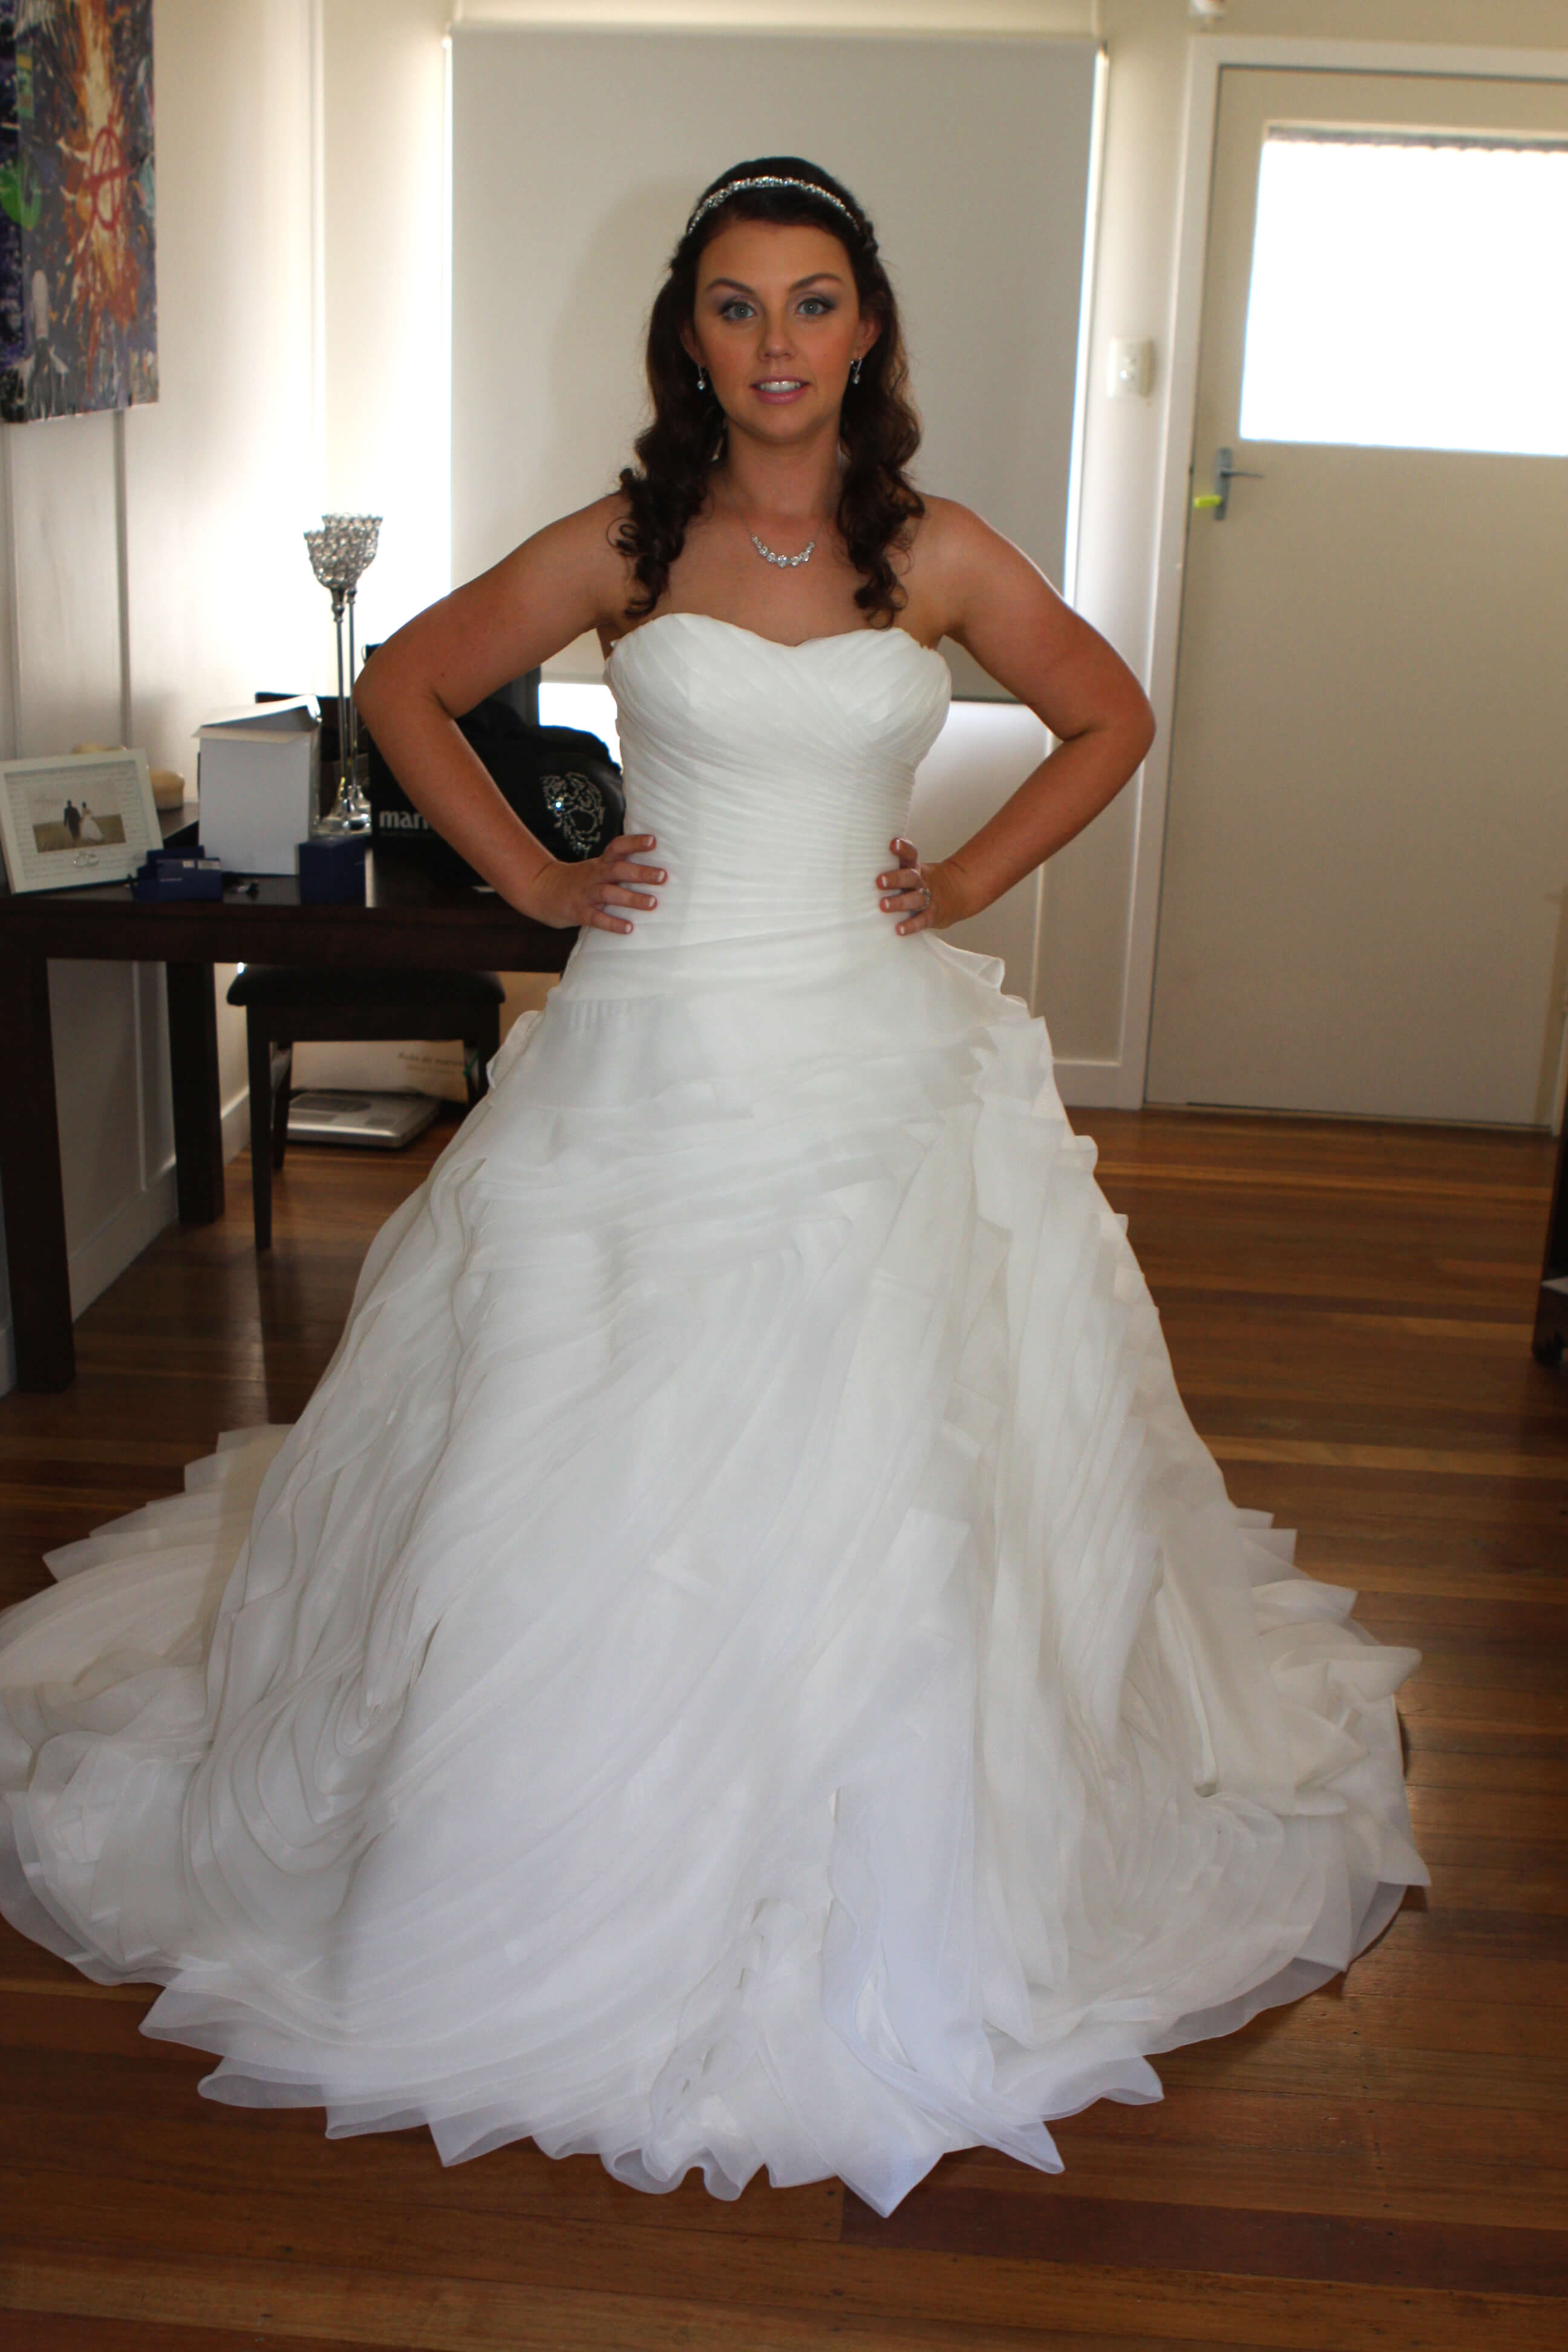 Winnie Bridal – Size 10 Ball Gown dress | Second hand wedding dresses stafford heights - Size 10